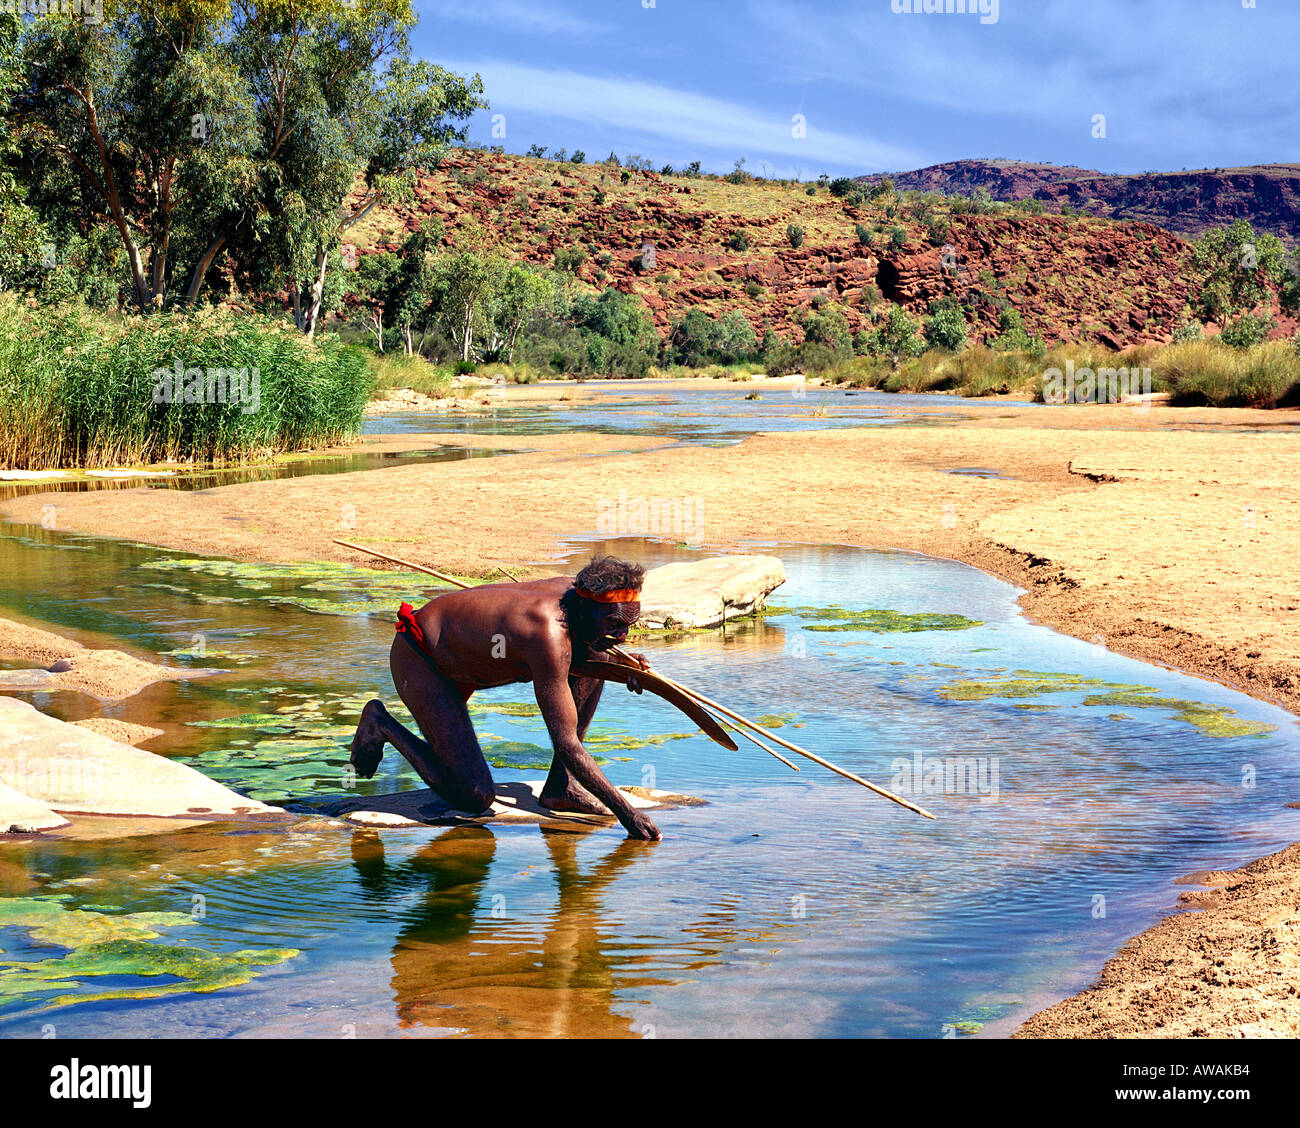 Au - Northern Territory: native Ureinwohner Stockbild